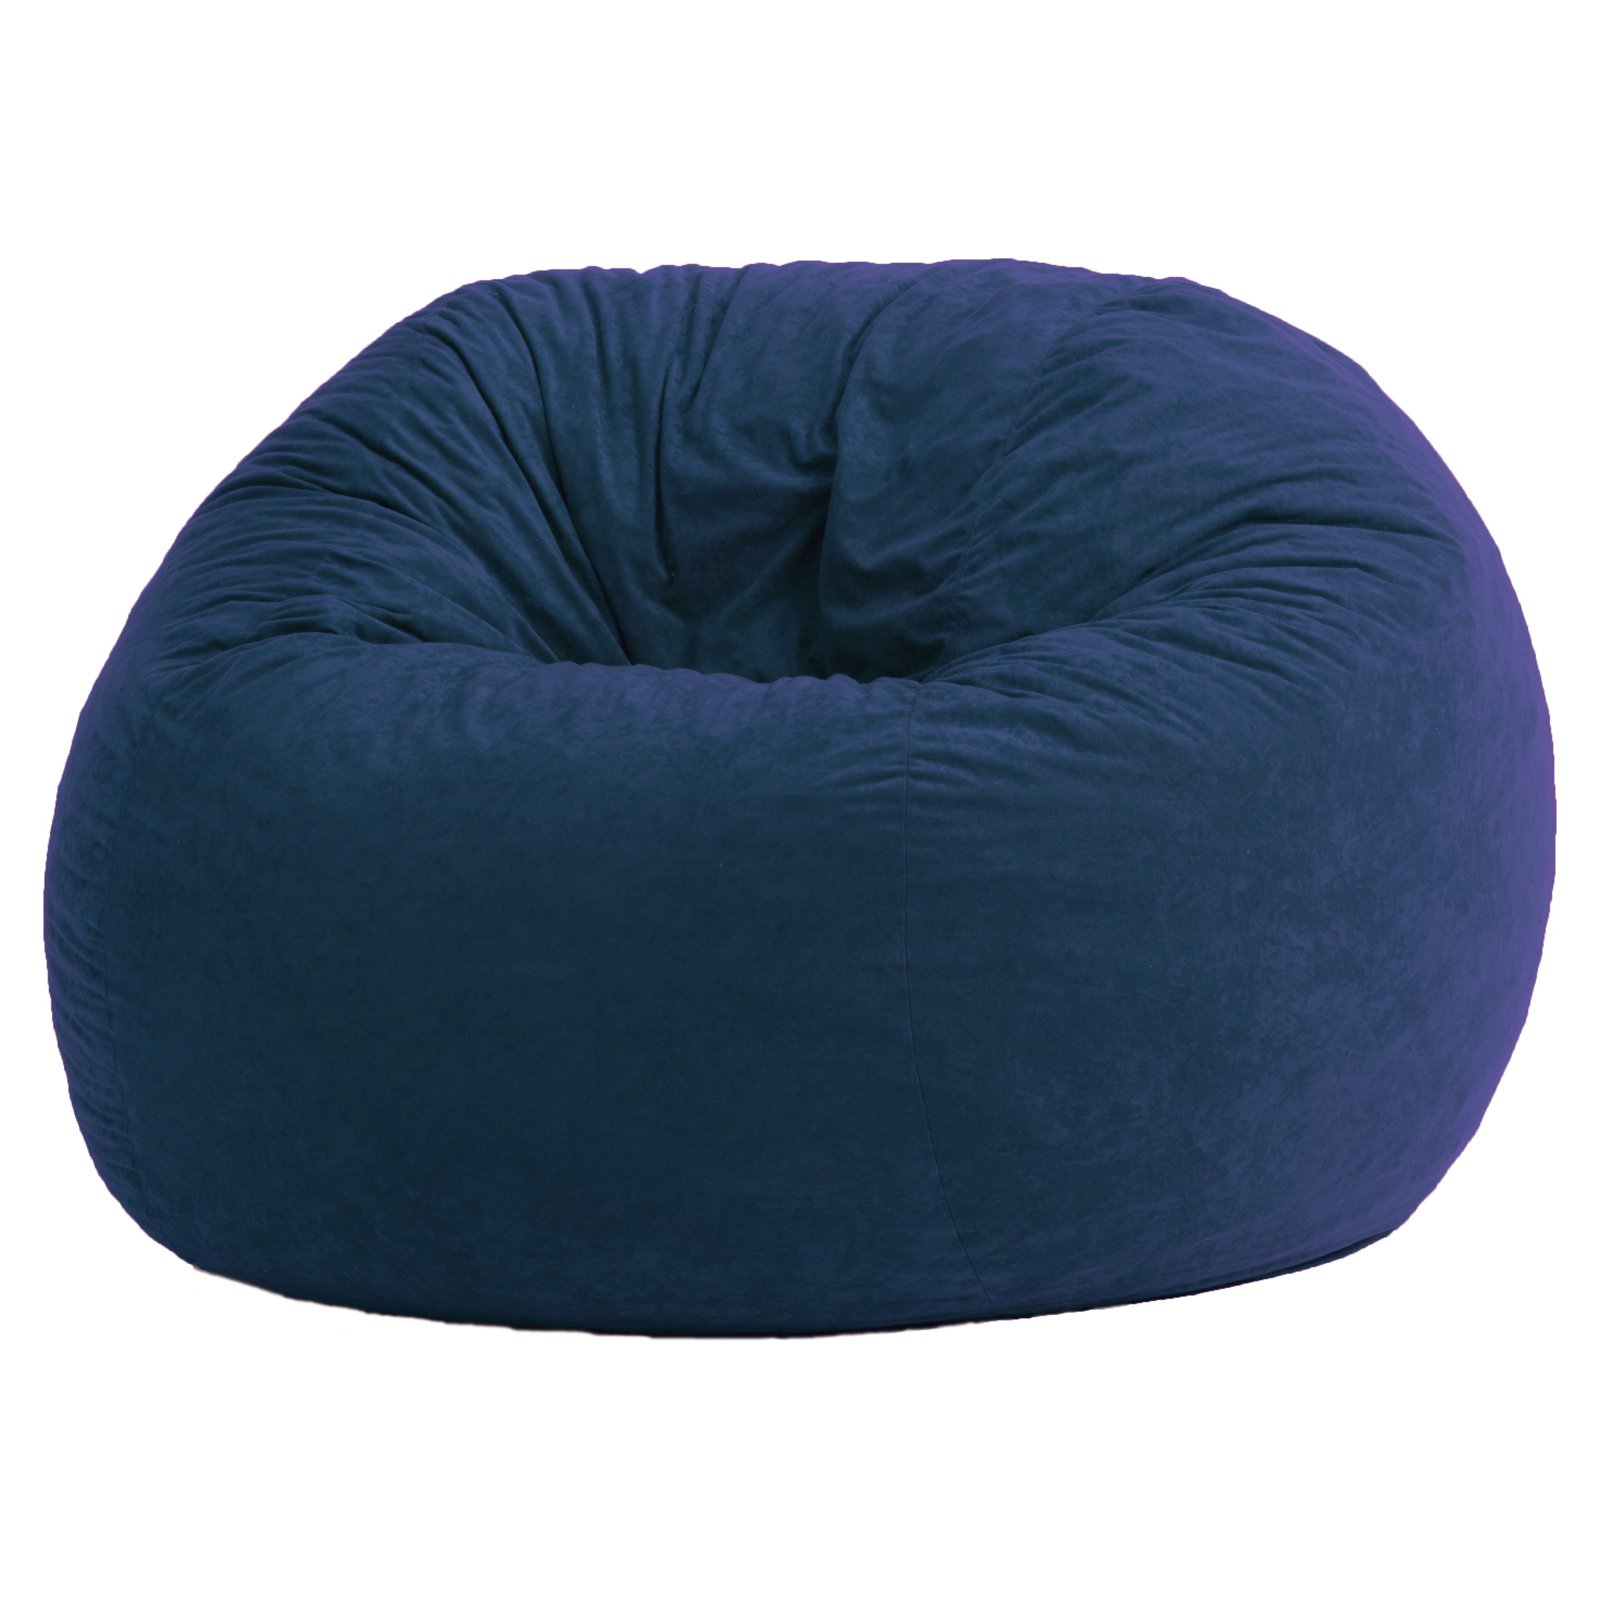 Bean Bags Chair Details About Large 4 Fuf Comfort Suede Bean Bag Chair Multiple Colors